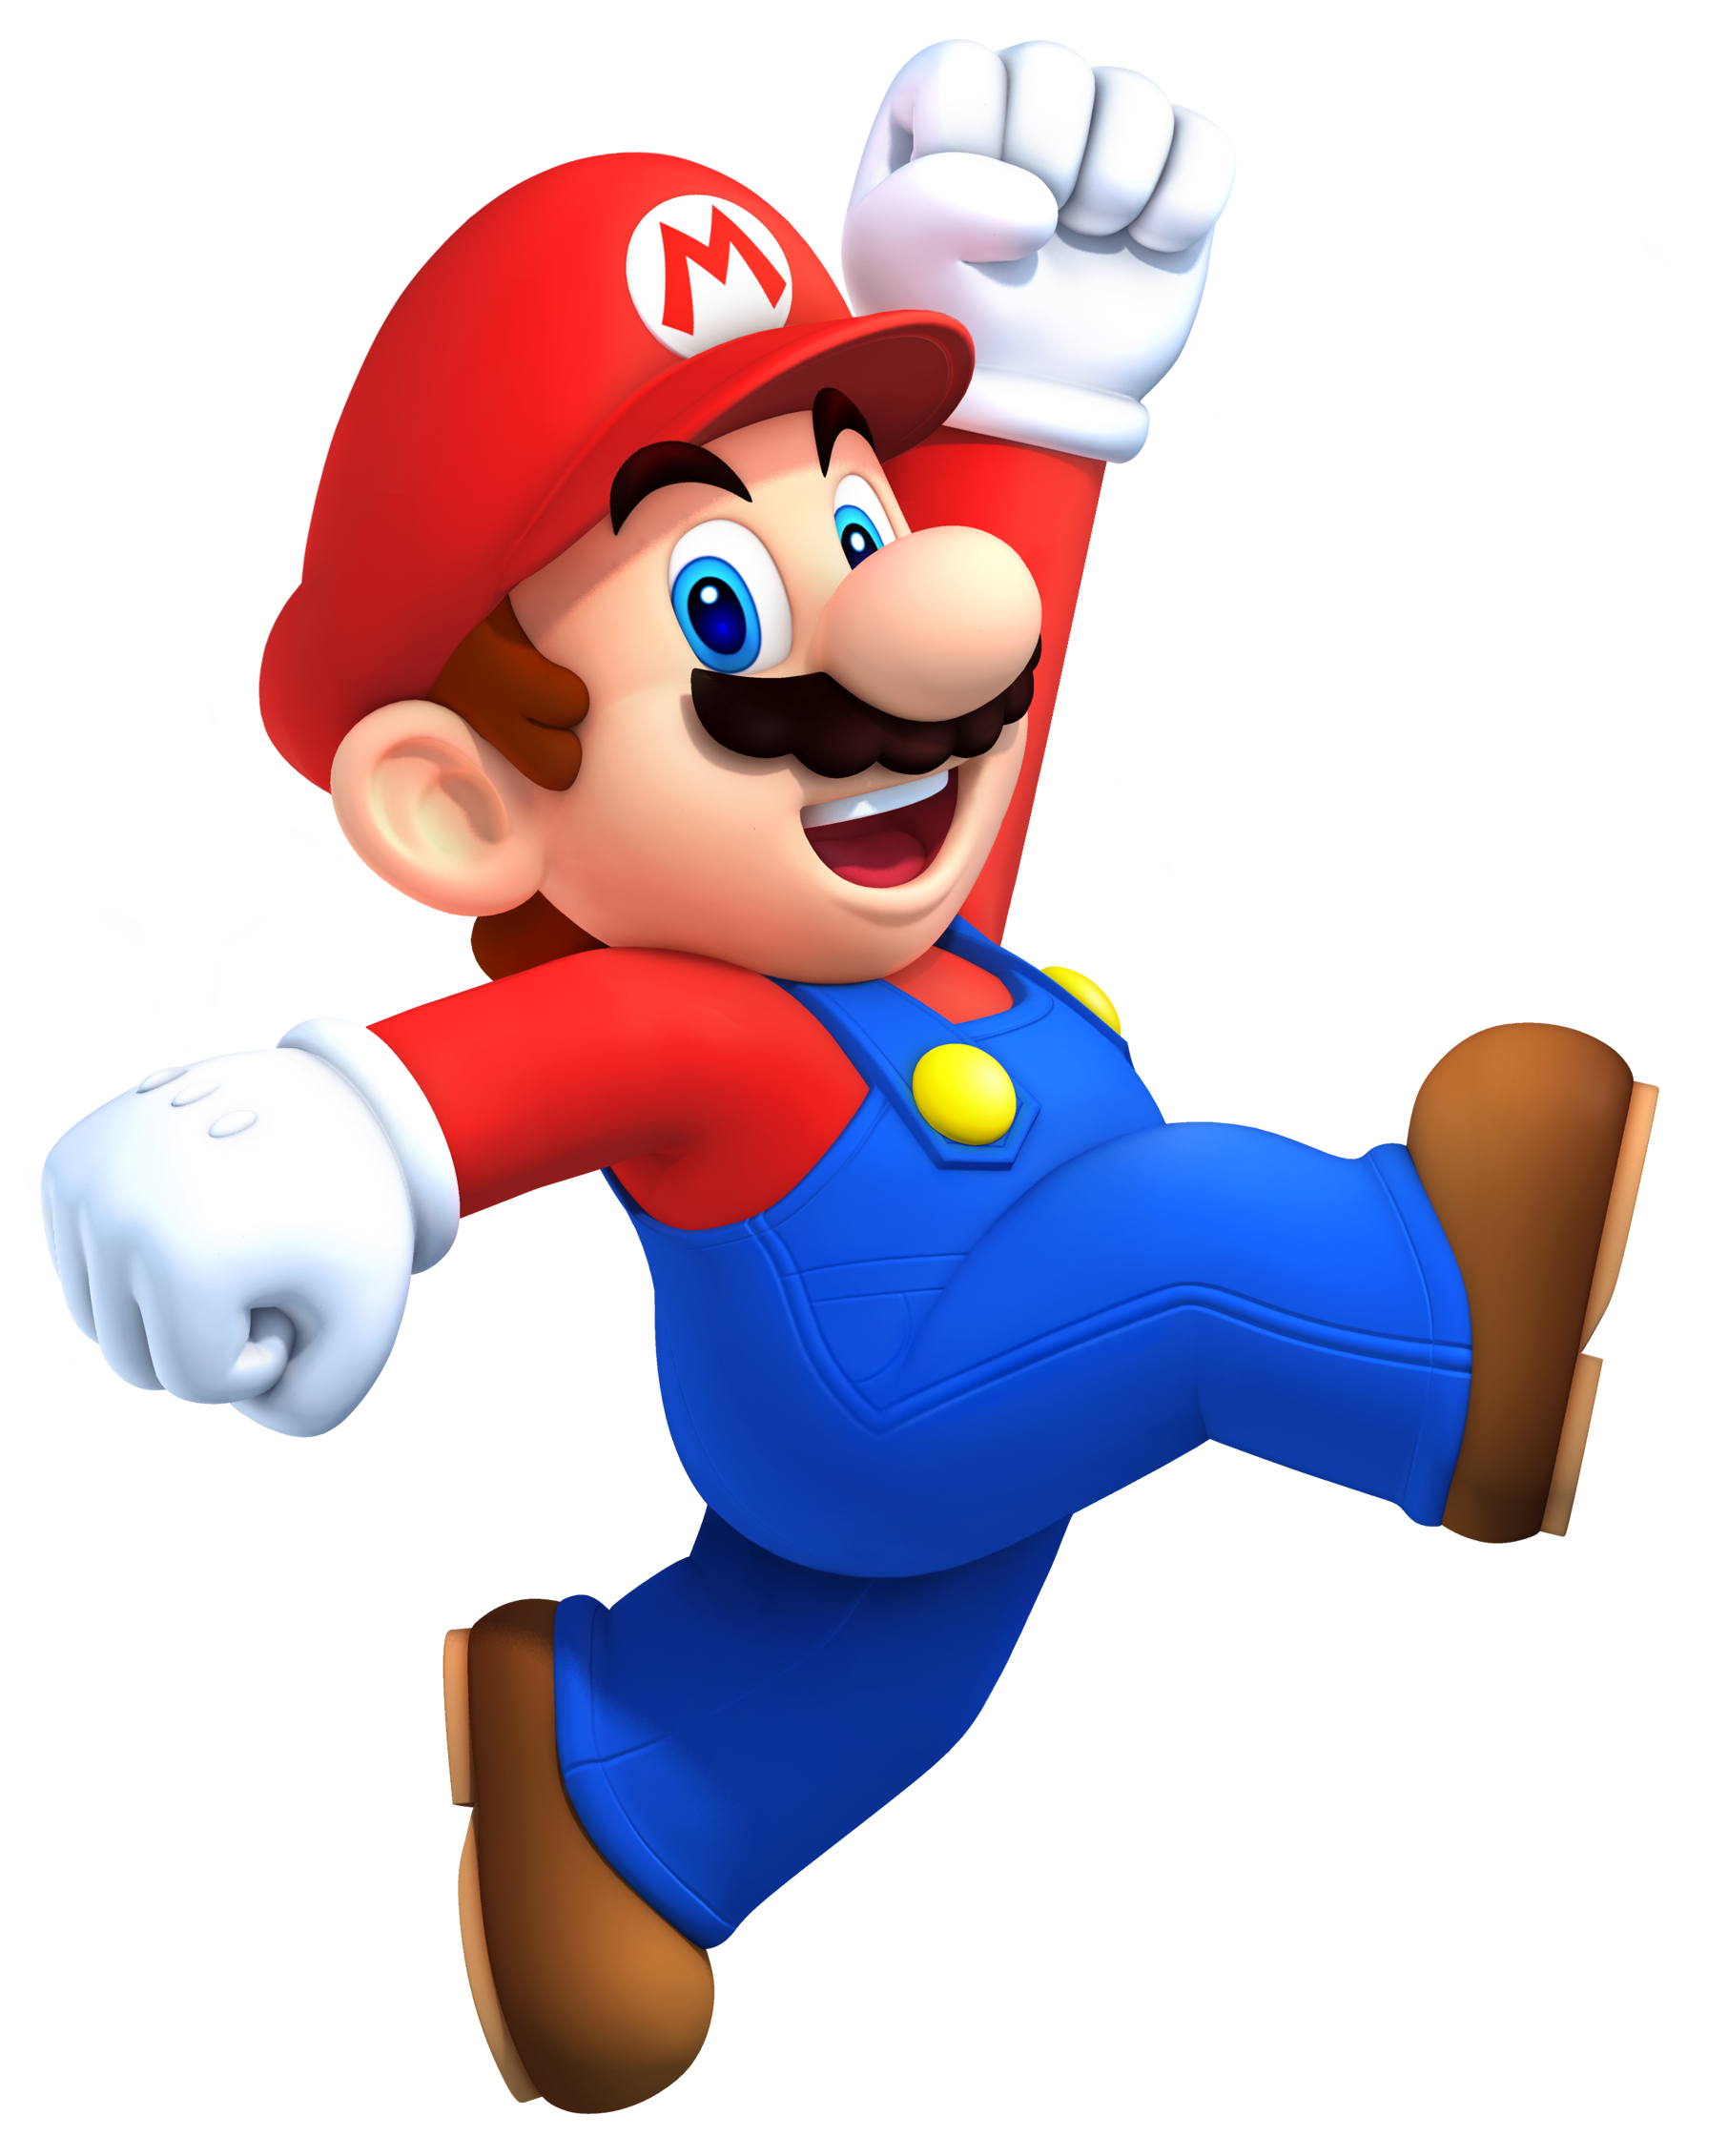 Mario - The Nintendo Wiki - Wii, Nintendo DS, and all things Nintendo